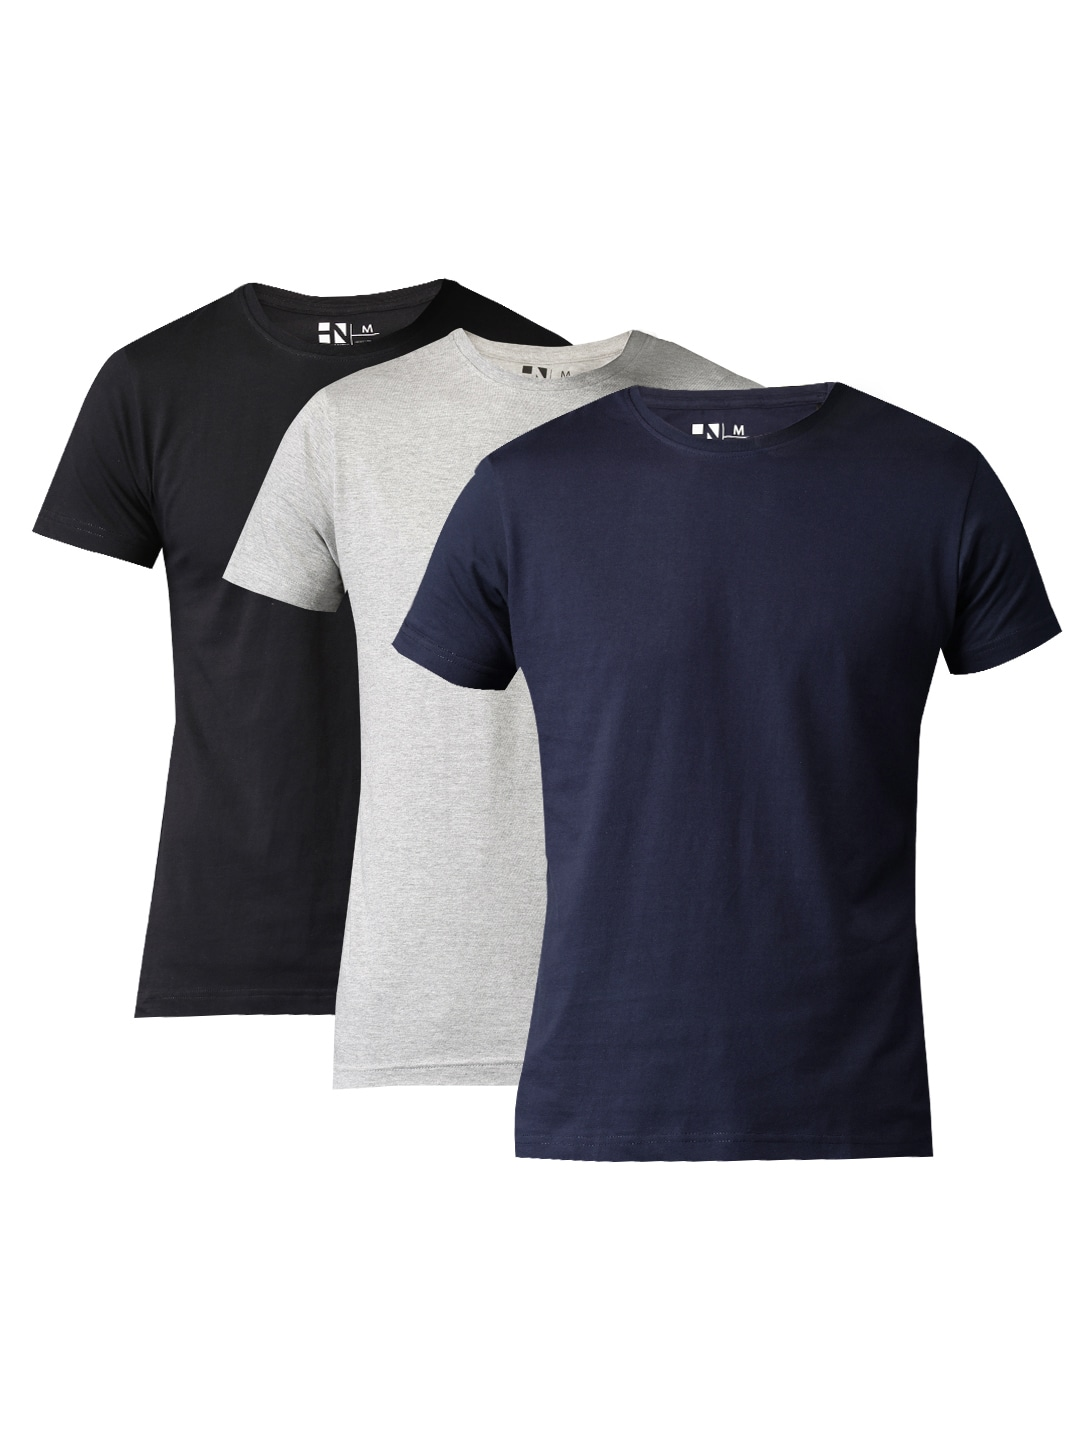 974d0a1c4c9 3 Pack Neck Tshirts - Buy 3 Pack Neck Tshirts online in India